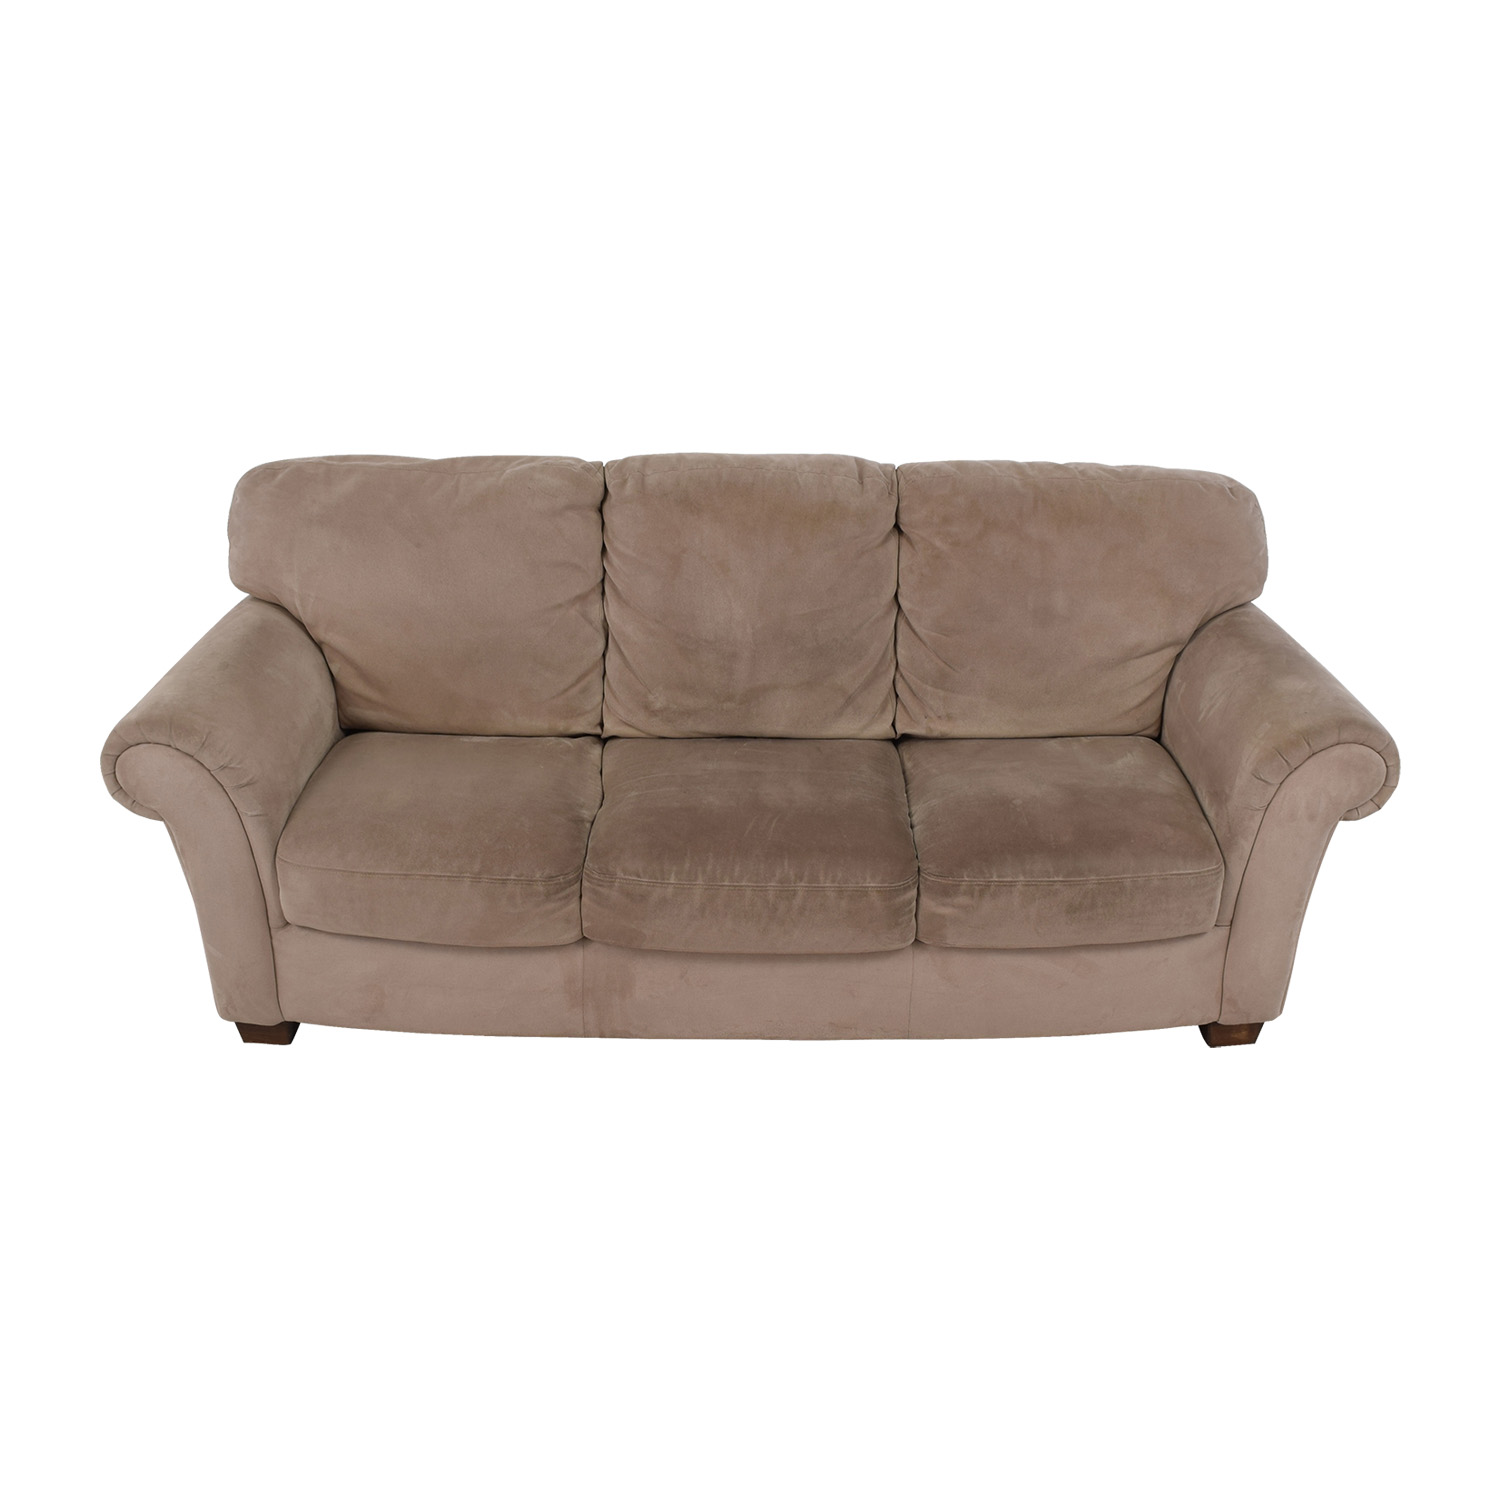 Macys Macys Tan Three-Cushion Sofa used